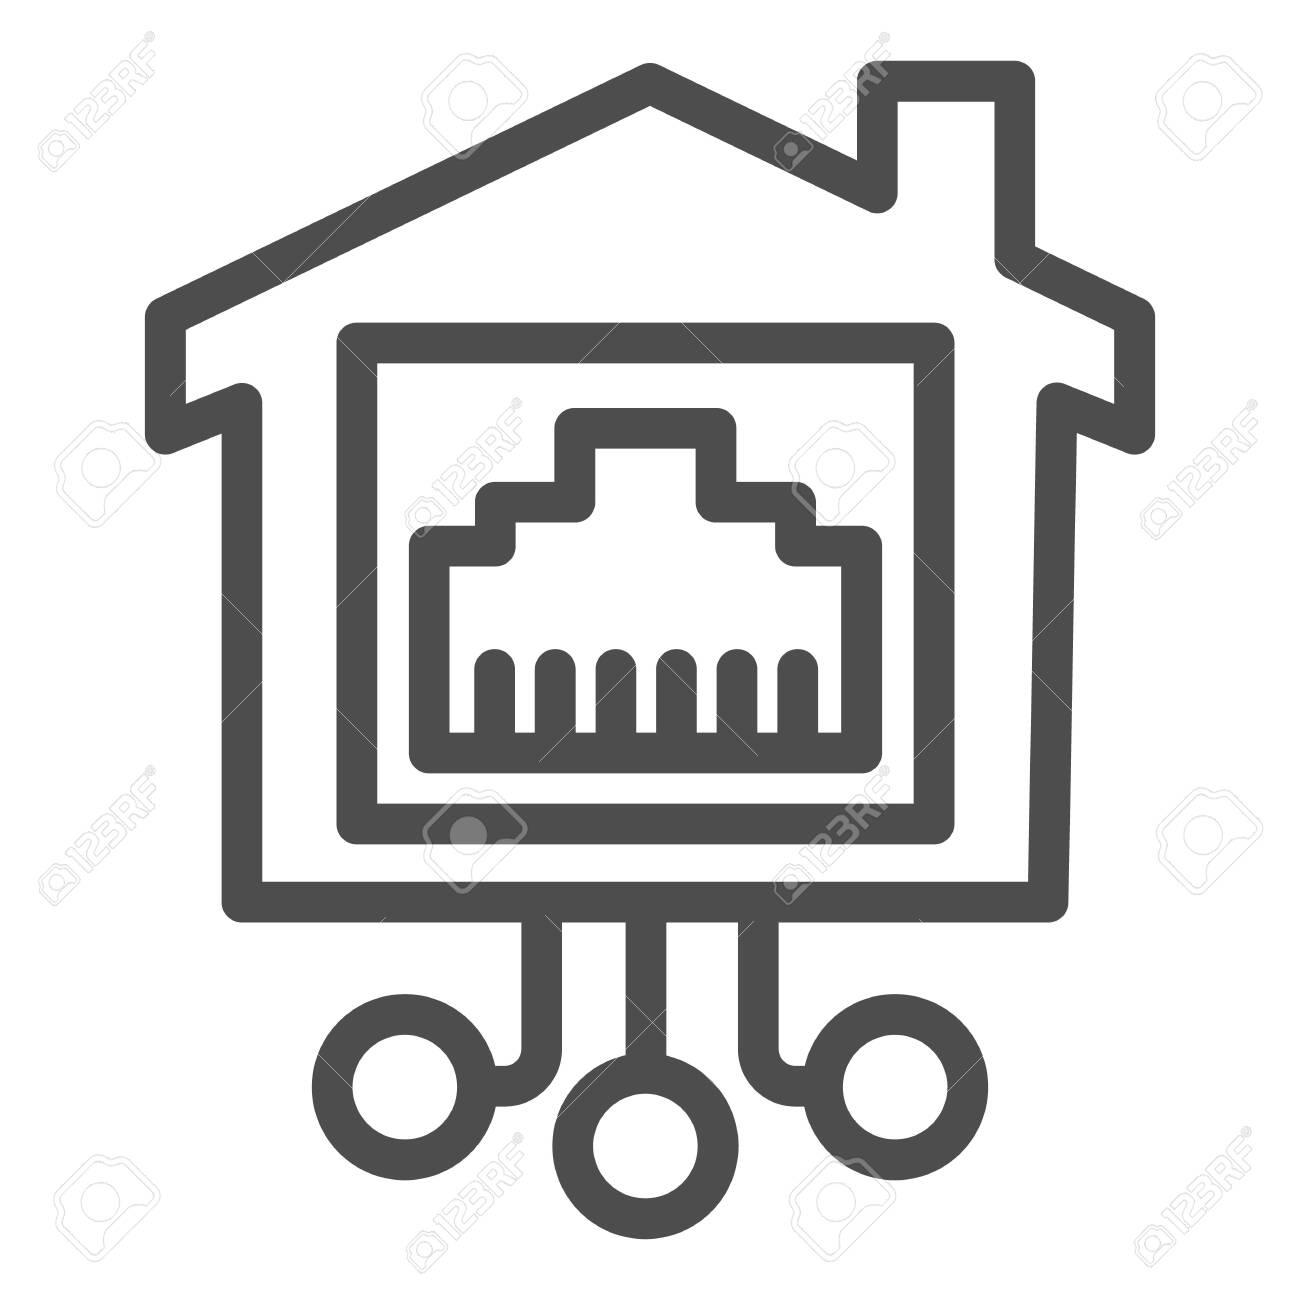 Technology High tech Building Resource, tecnologia transparent background  PNG clipart   HiClipart